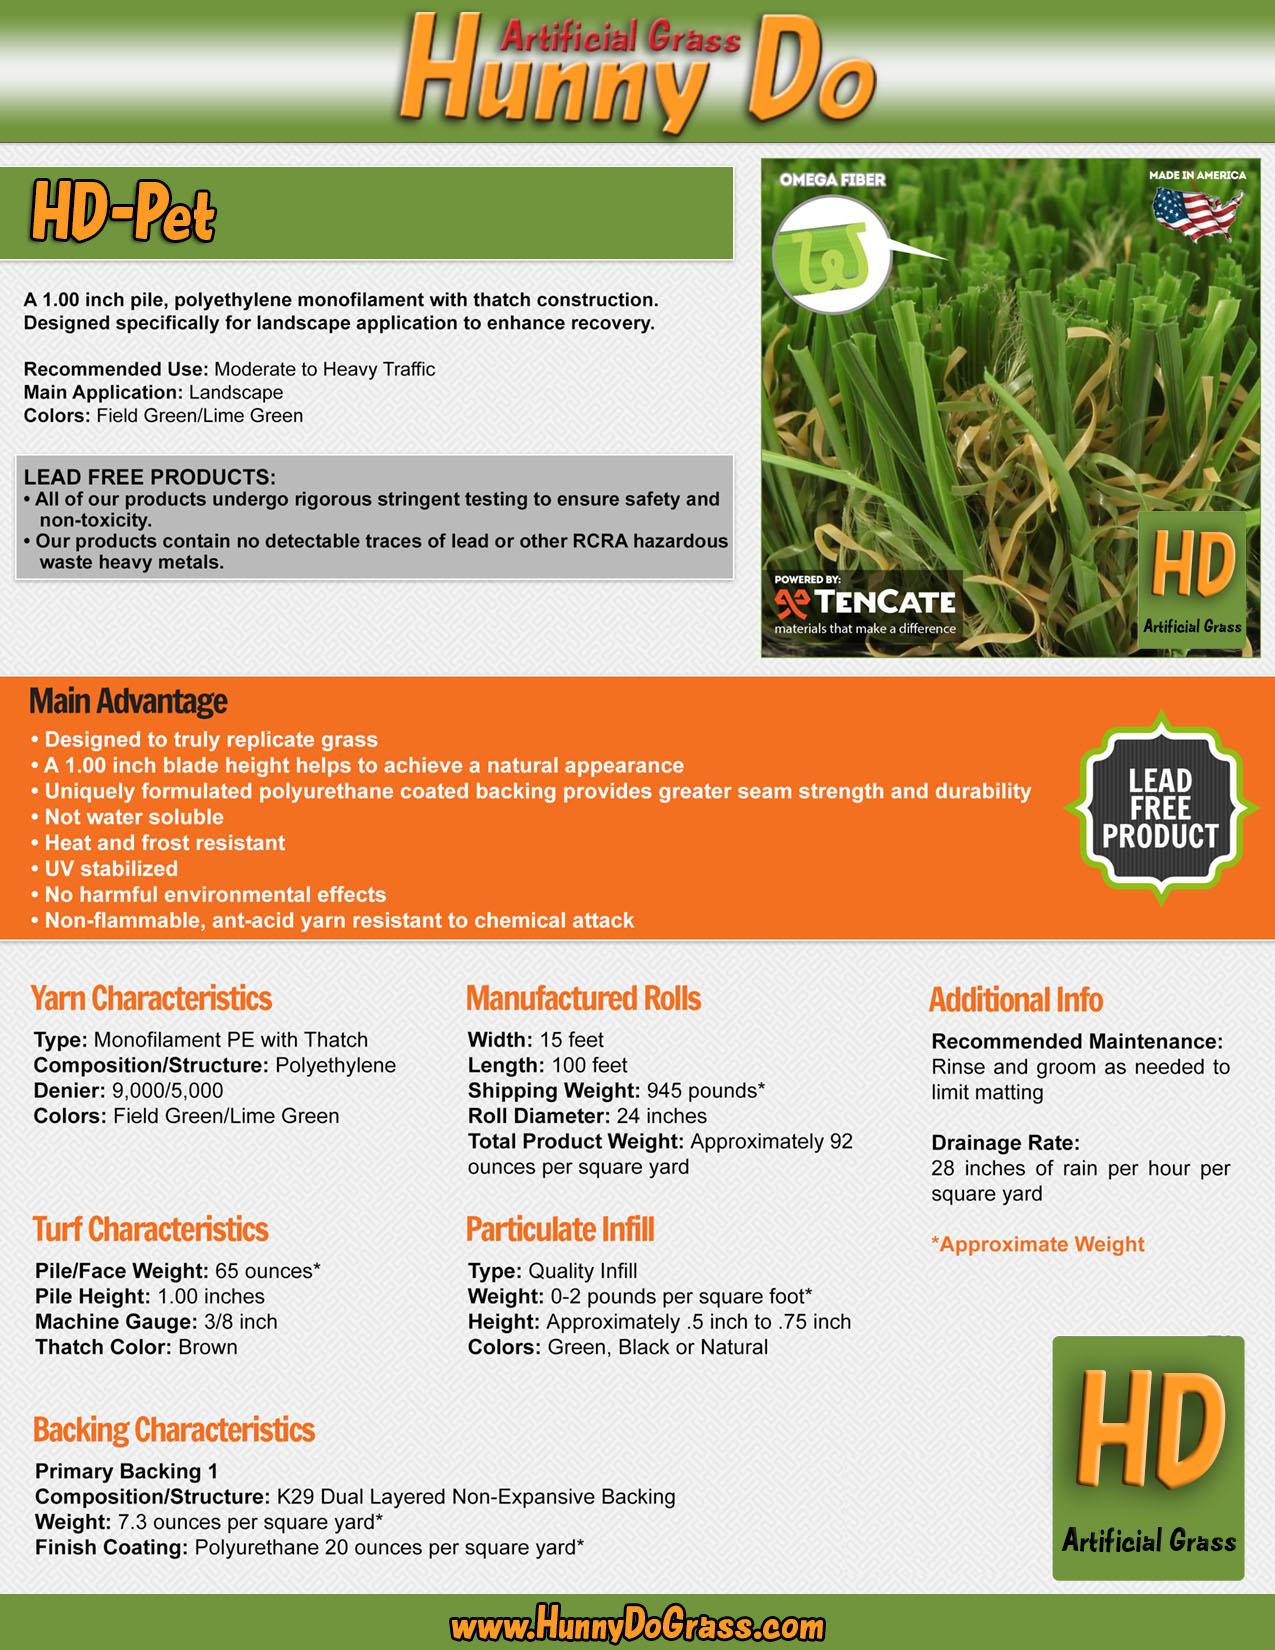 Hunny Do Pet Artificial Grass Specifications